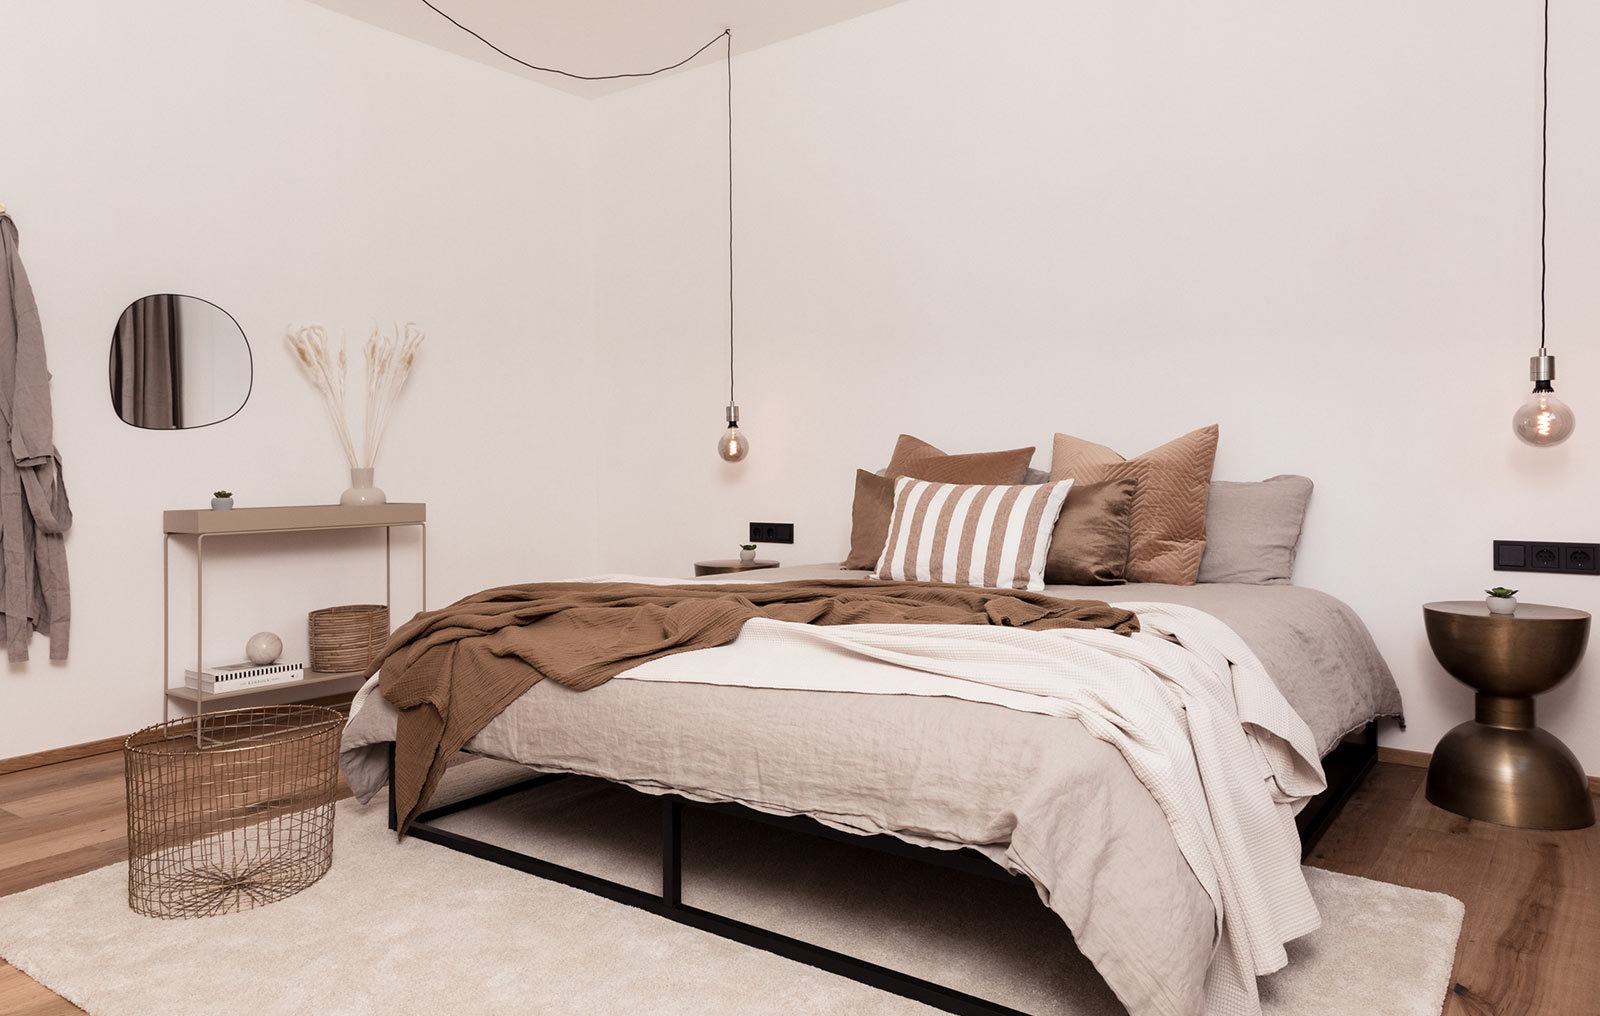 Nook Homestaging